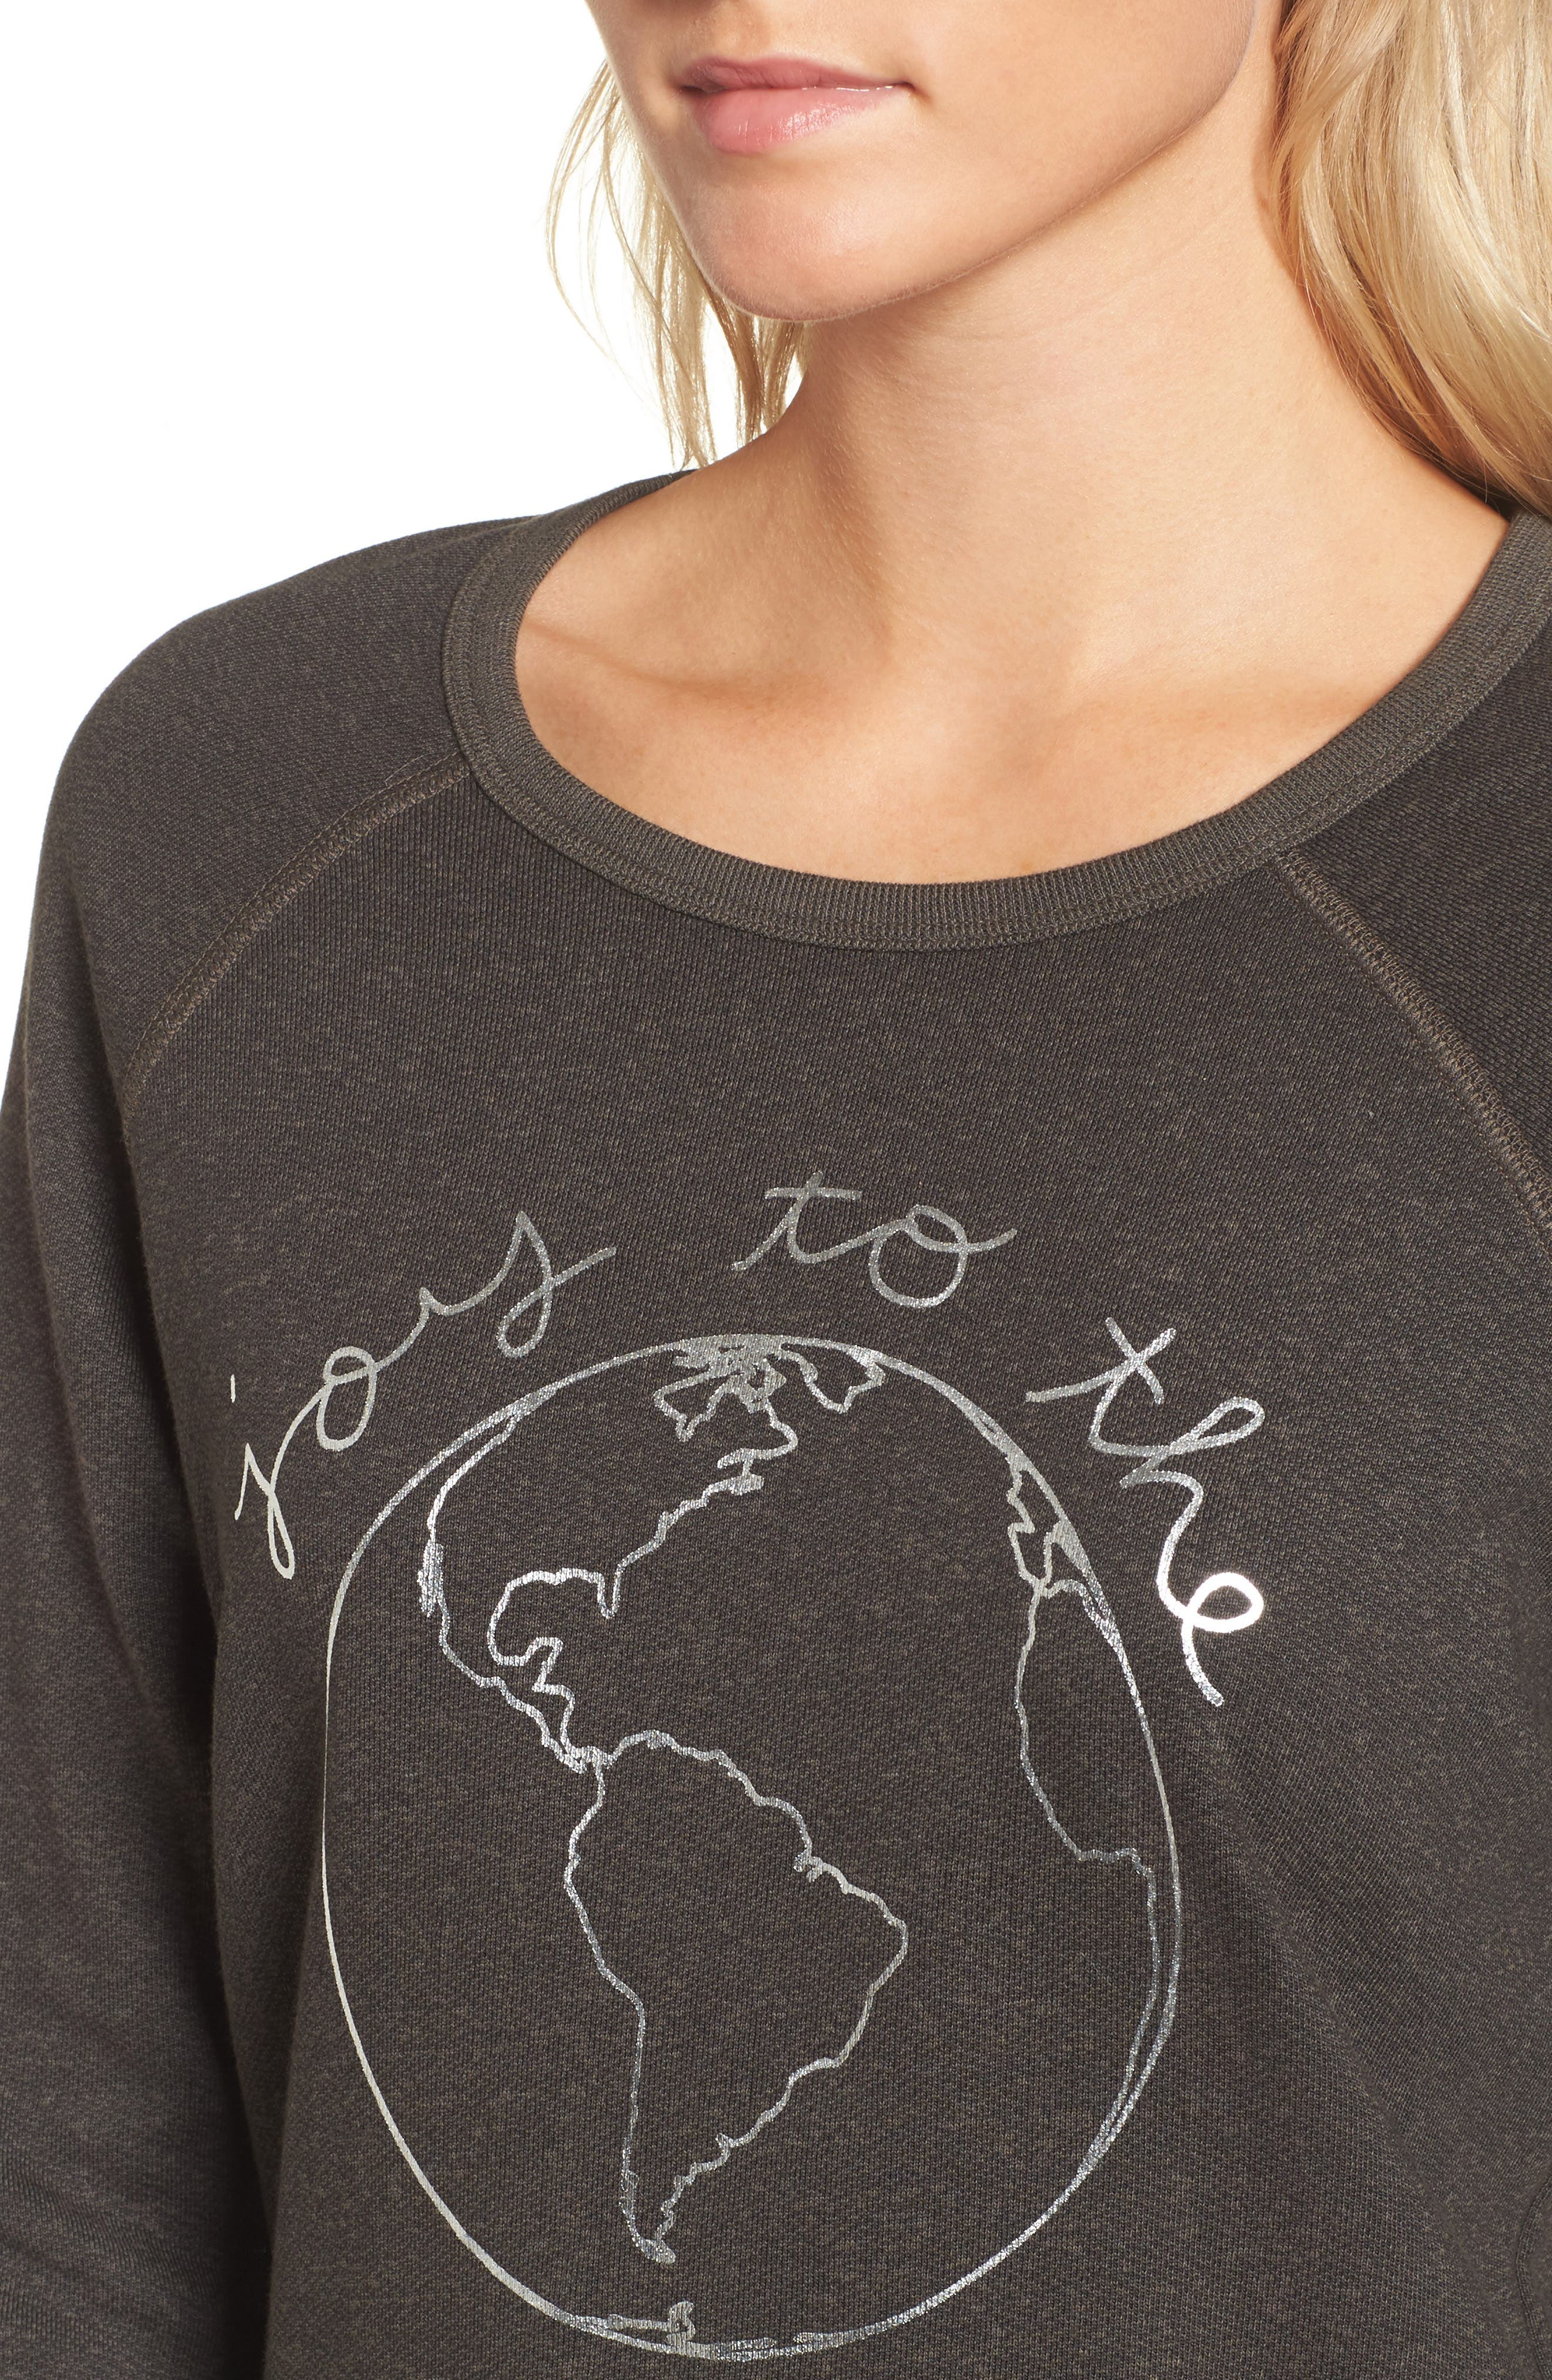 Joy to the World Sweatshirt,                             Alternate thumbnail 4, color,